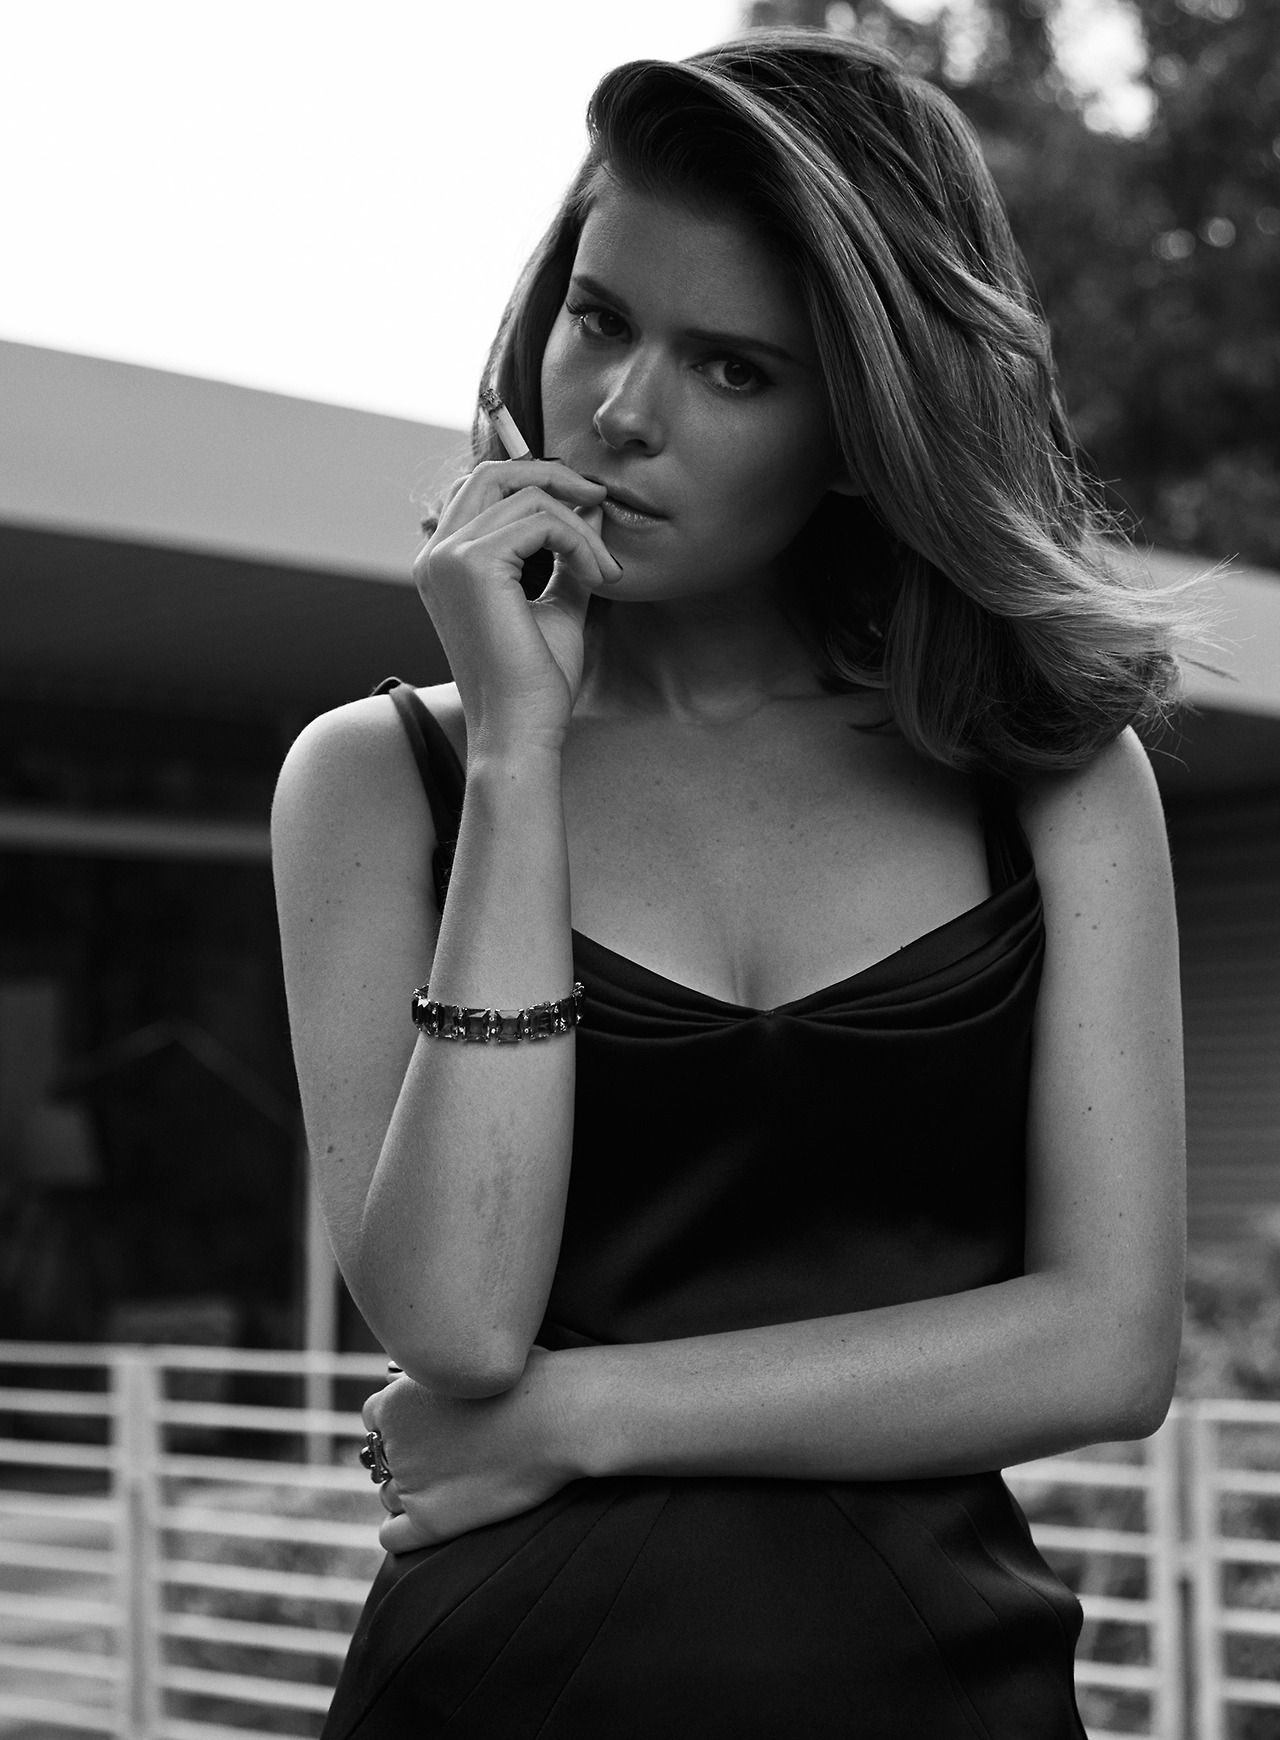 Kate Mara smoking ~ absolutely disappointing she might ...